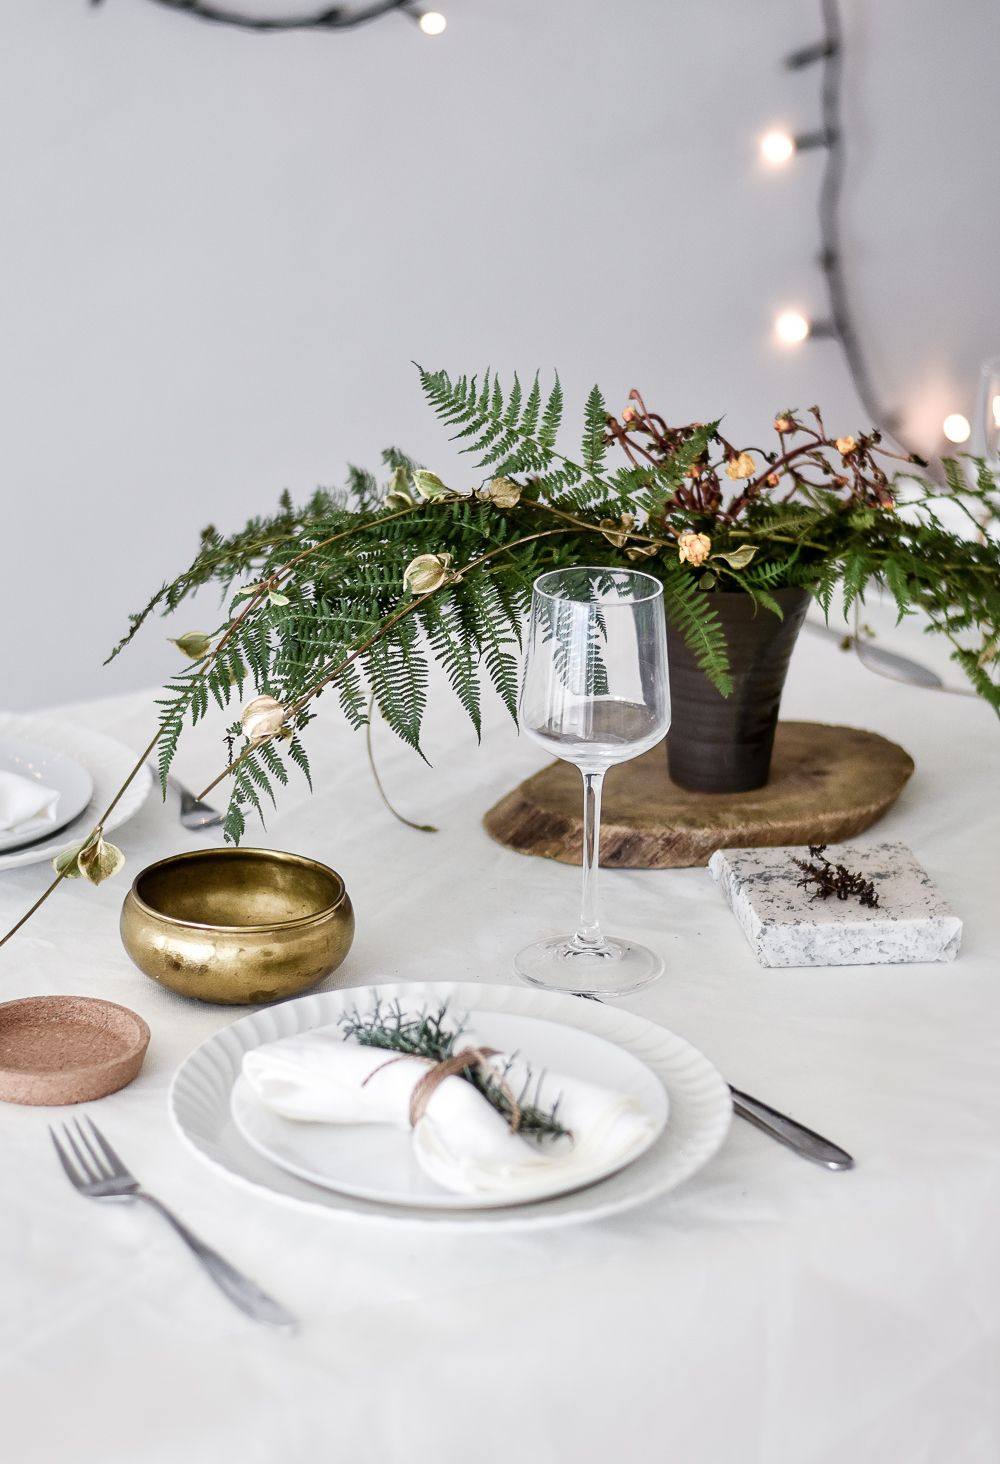 Green Festive Table Styling Centerpiece